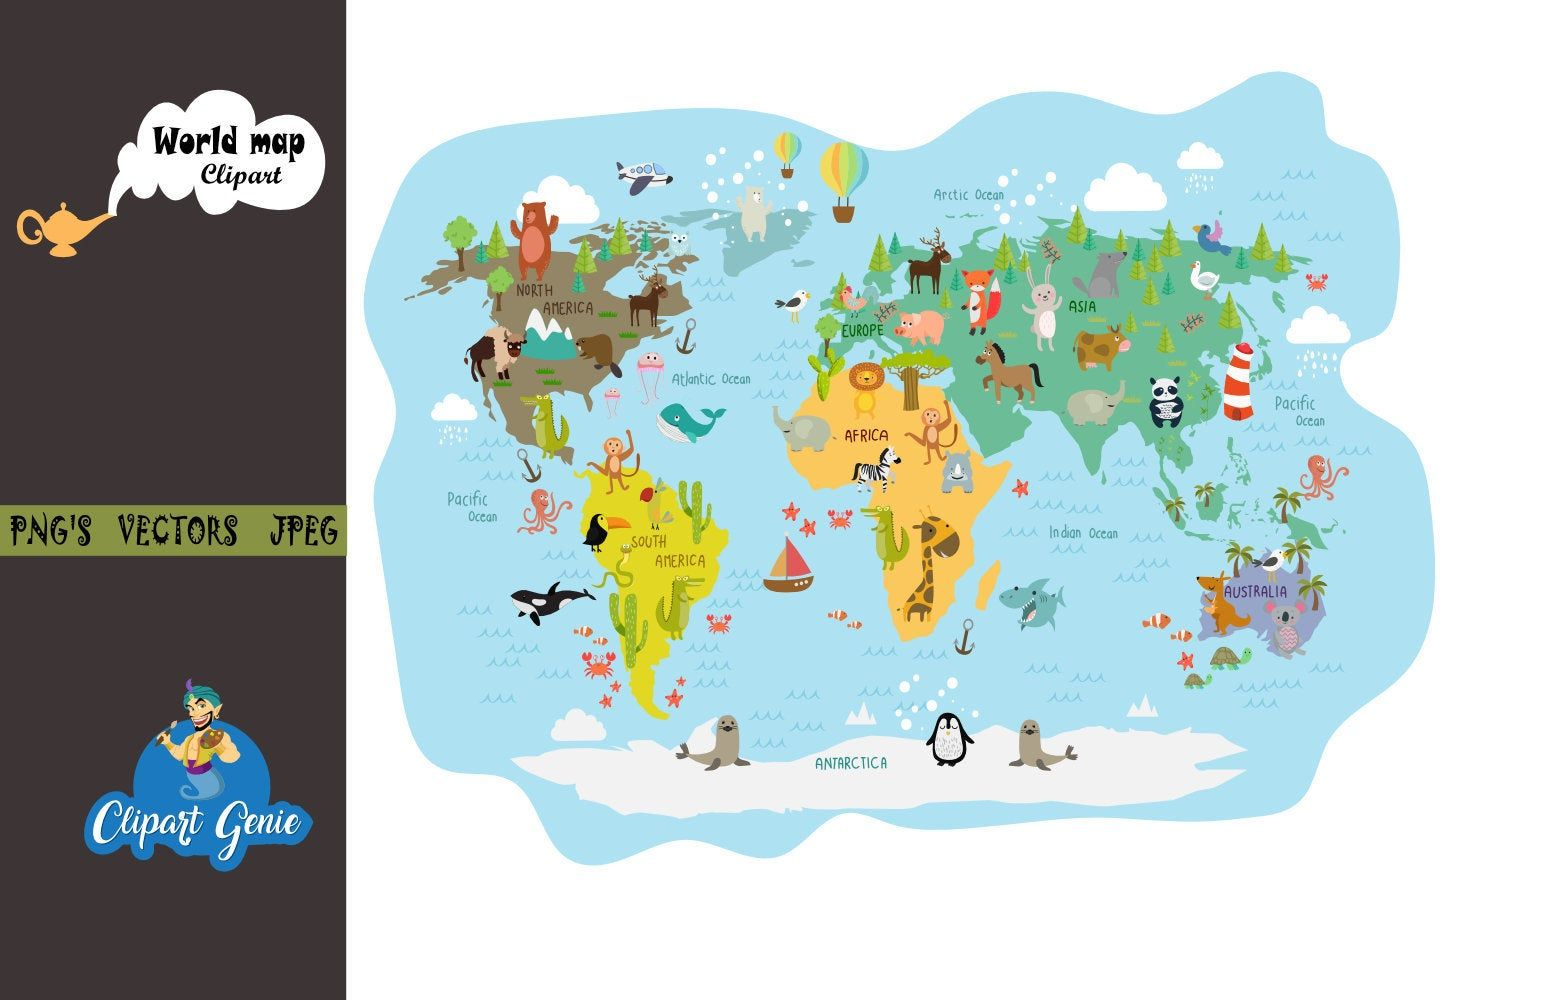 world map clipart, world map clipart, map clipart, school.